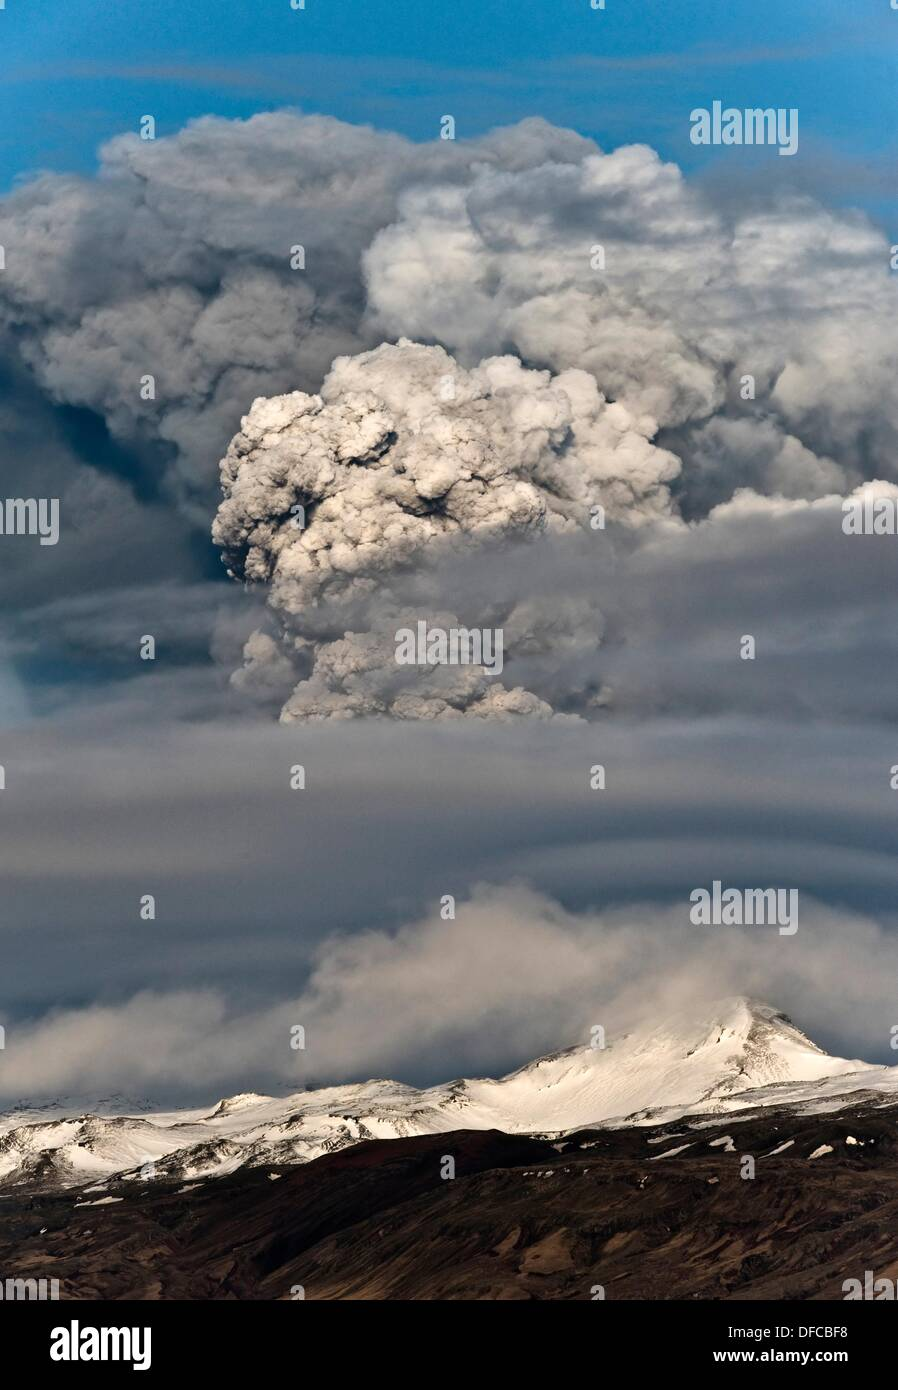 The huge amount of volcanic ash produced created havoc in European air space  Flights were cancelled and passengers stranded - Stock Image